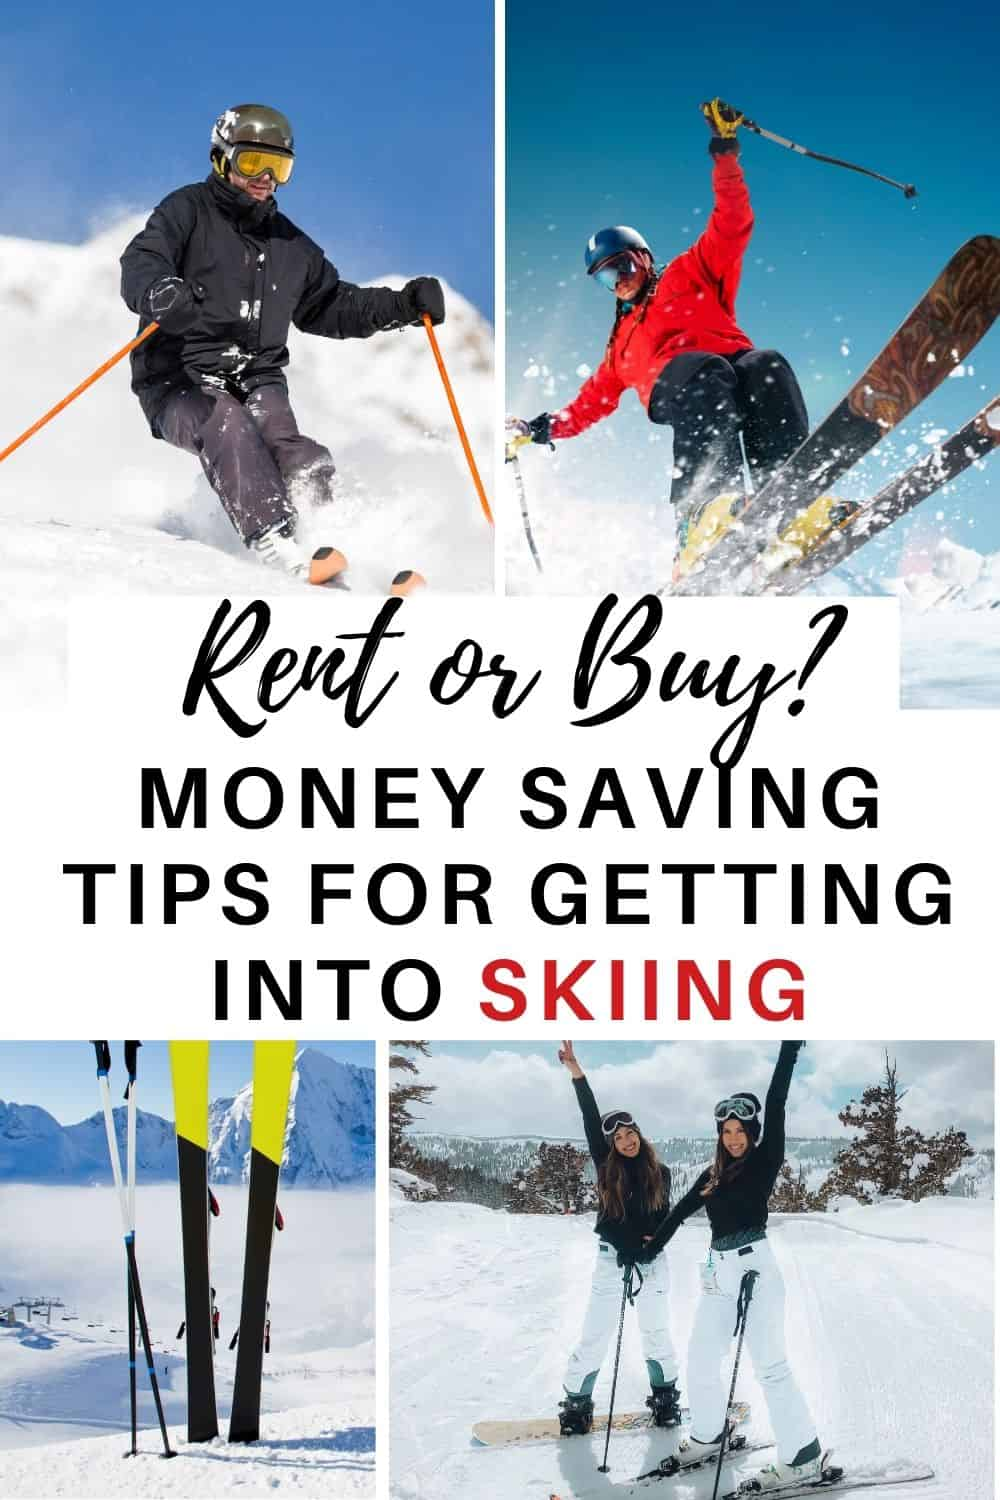 Rent of Buy? Money Saving tips for getting into Skiing? How to know whether to rent or buy when you go skiing or boarding for the first time. Budget tips for winter sports, winter gear tips and winter clothing.